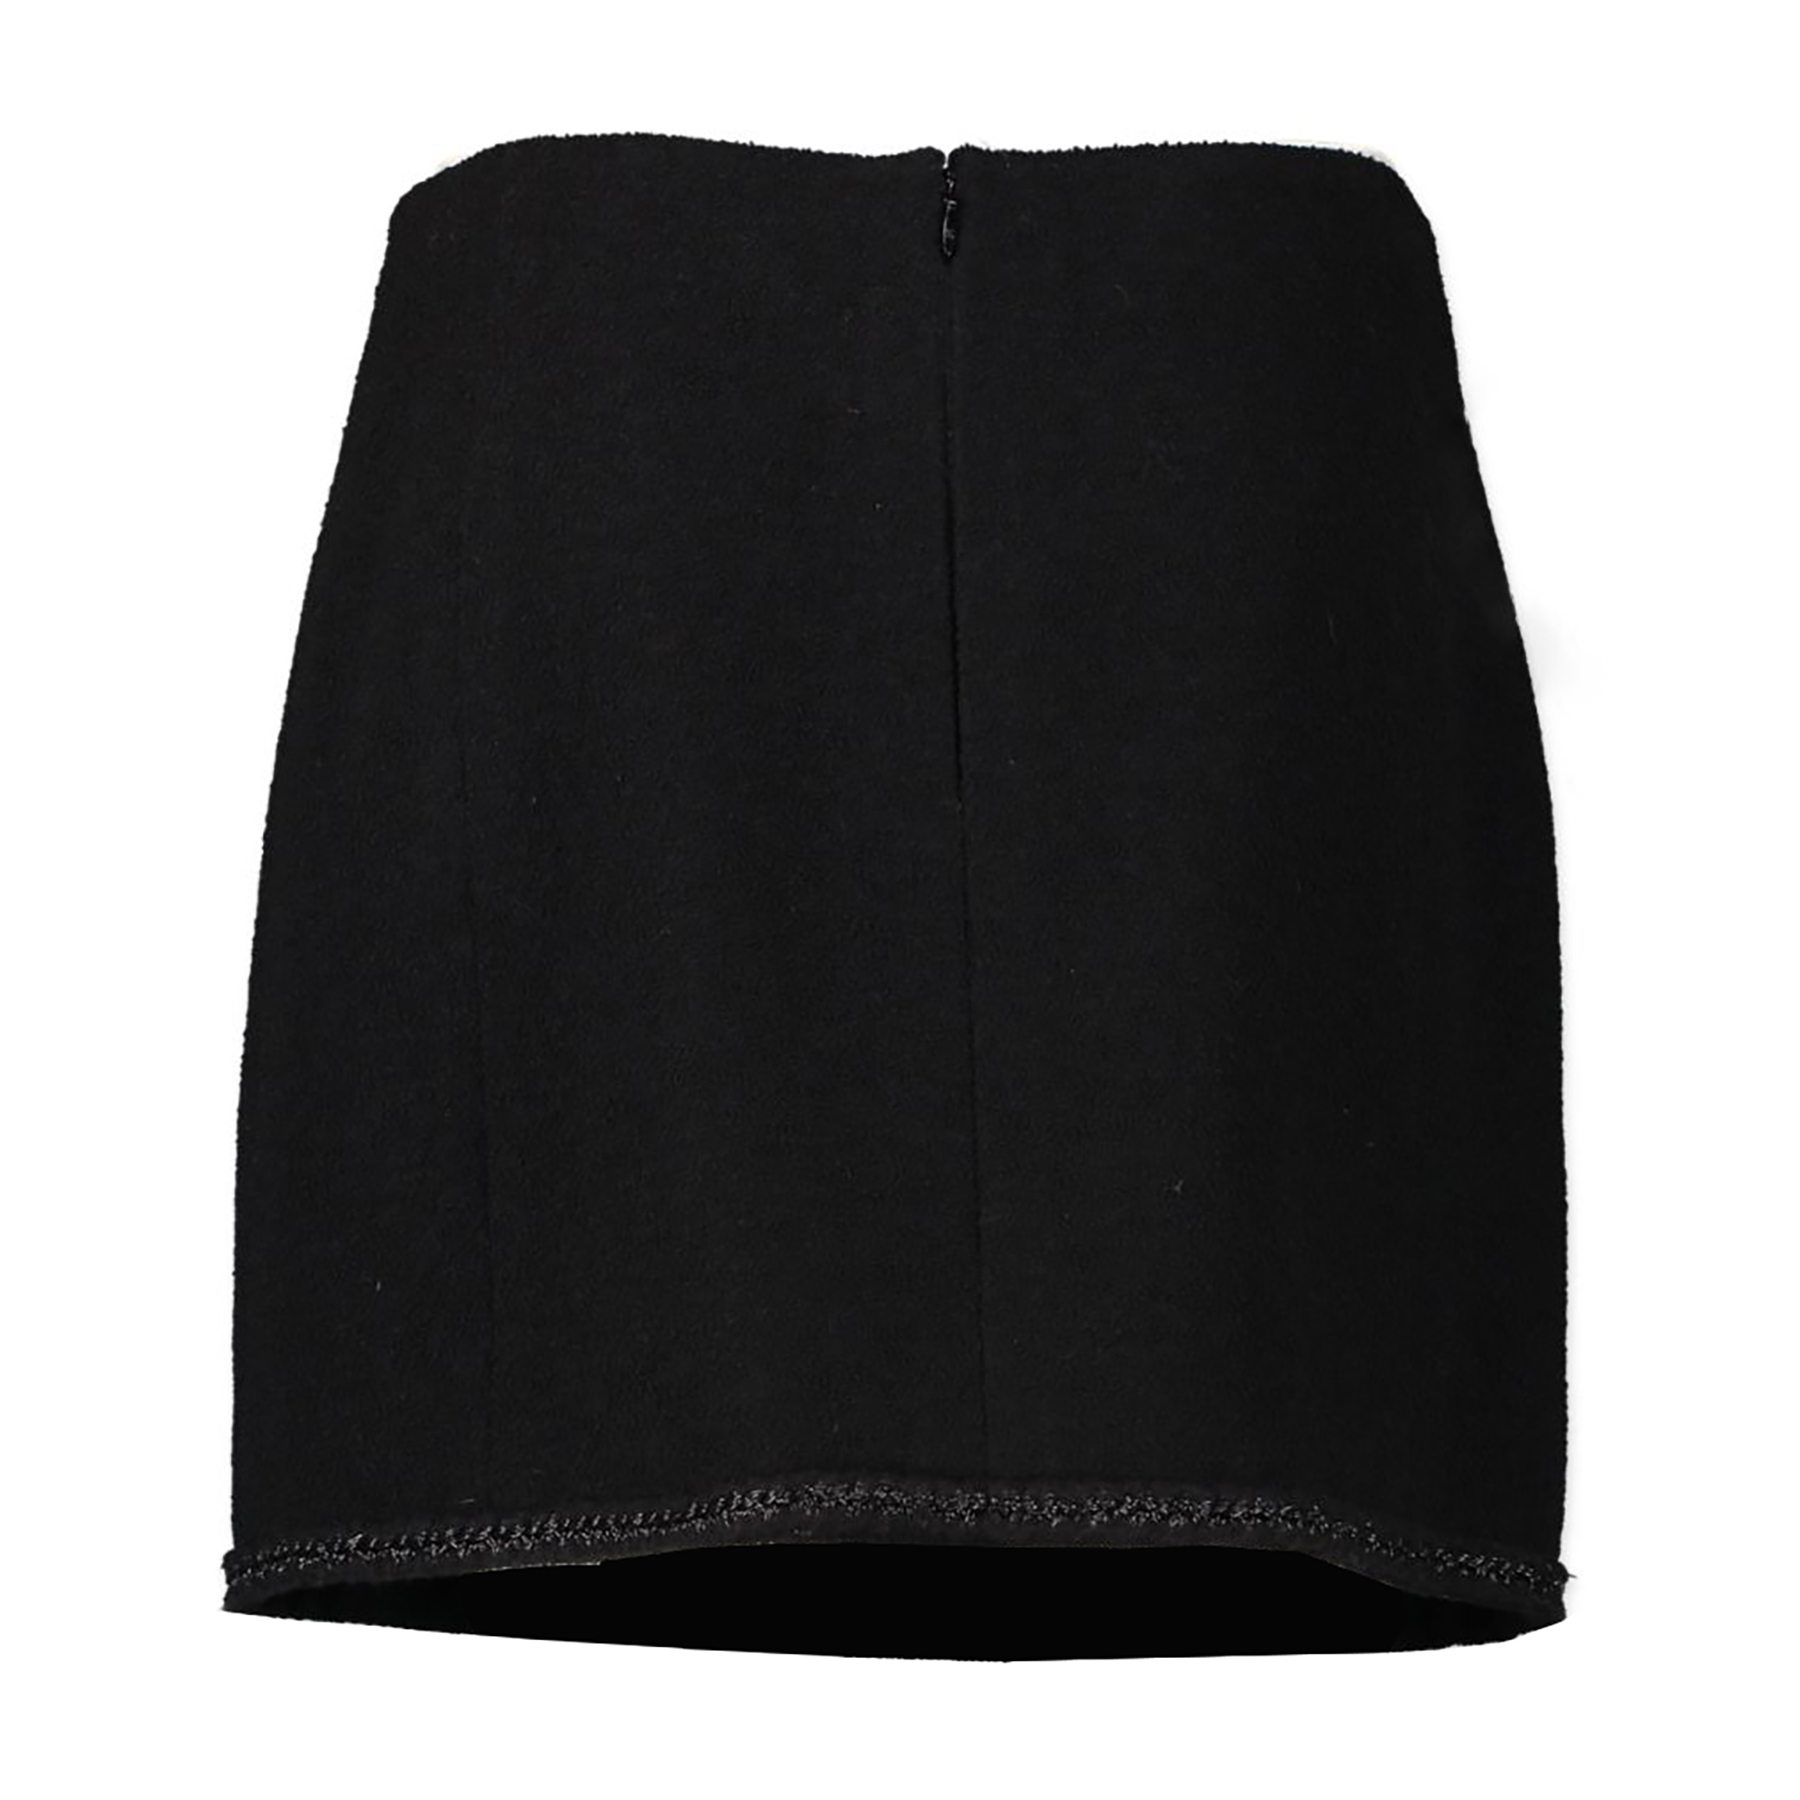 Authentic second-hand vintage Chanel Black Wool Mini Skirt - Size FR48 buy online webshop LabelLOV